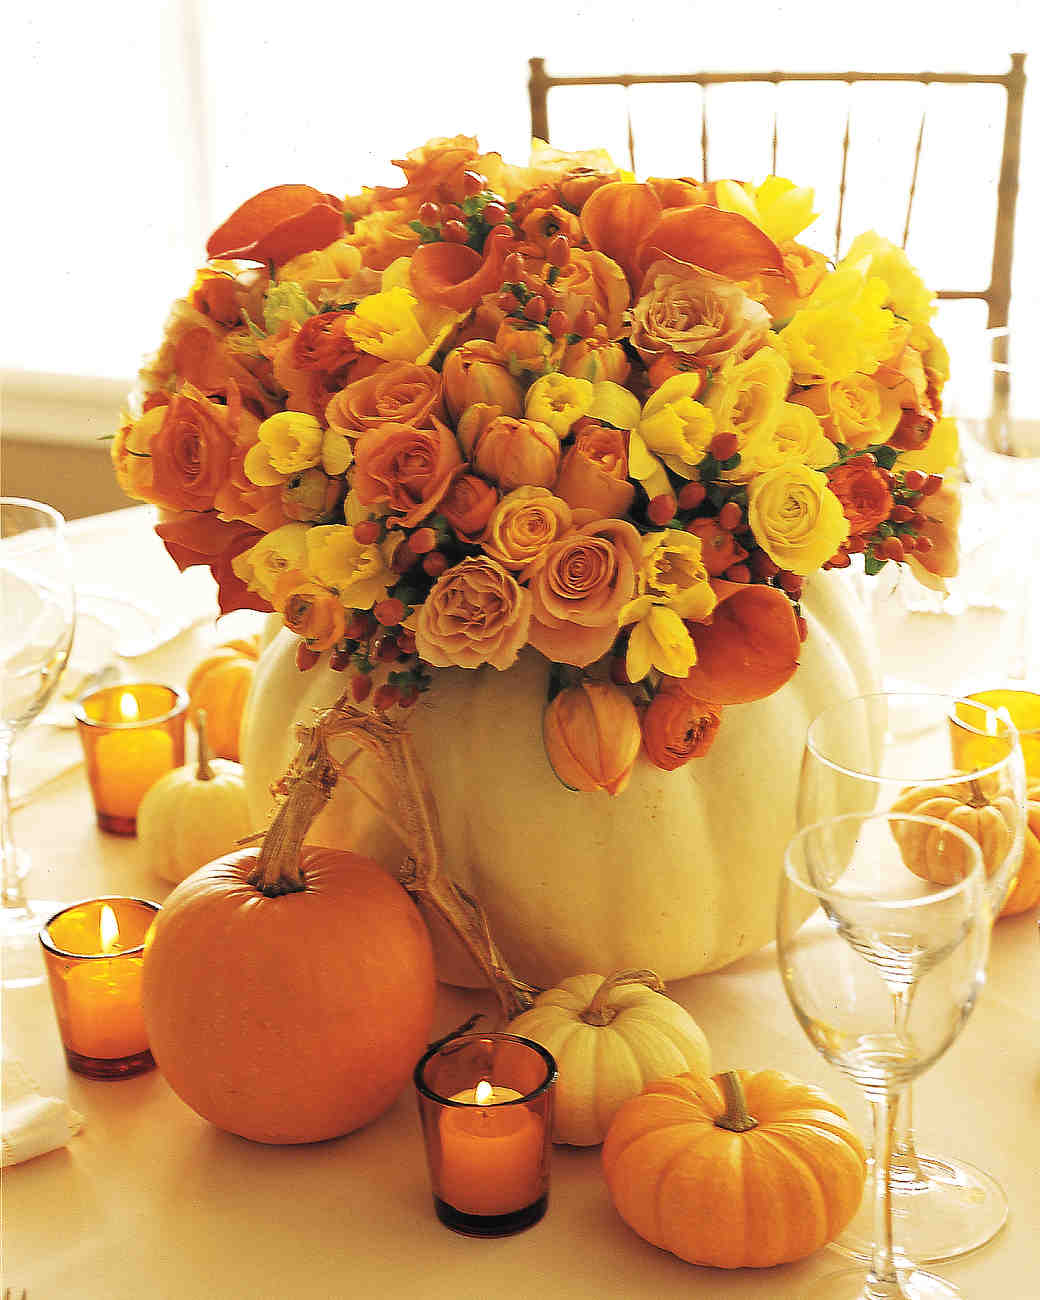 Fall Centerpiece in Hollowed White Pumpkin